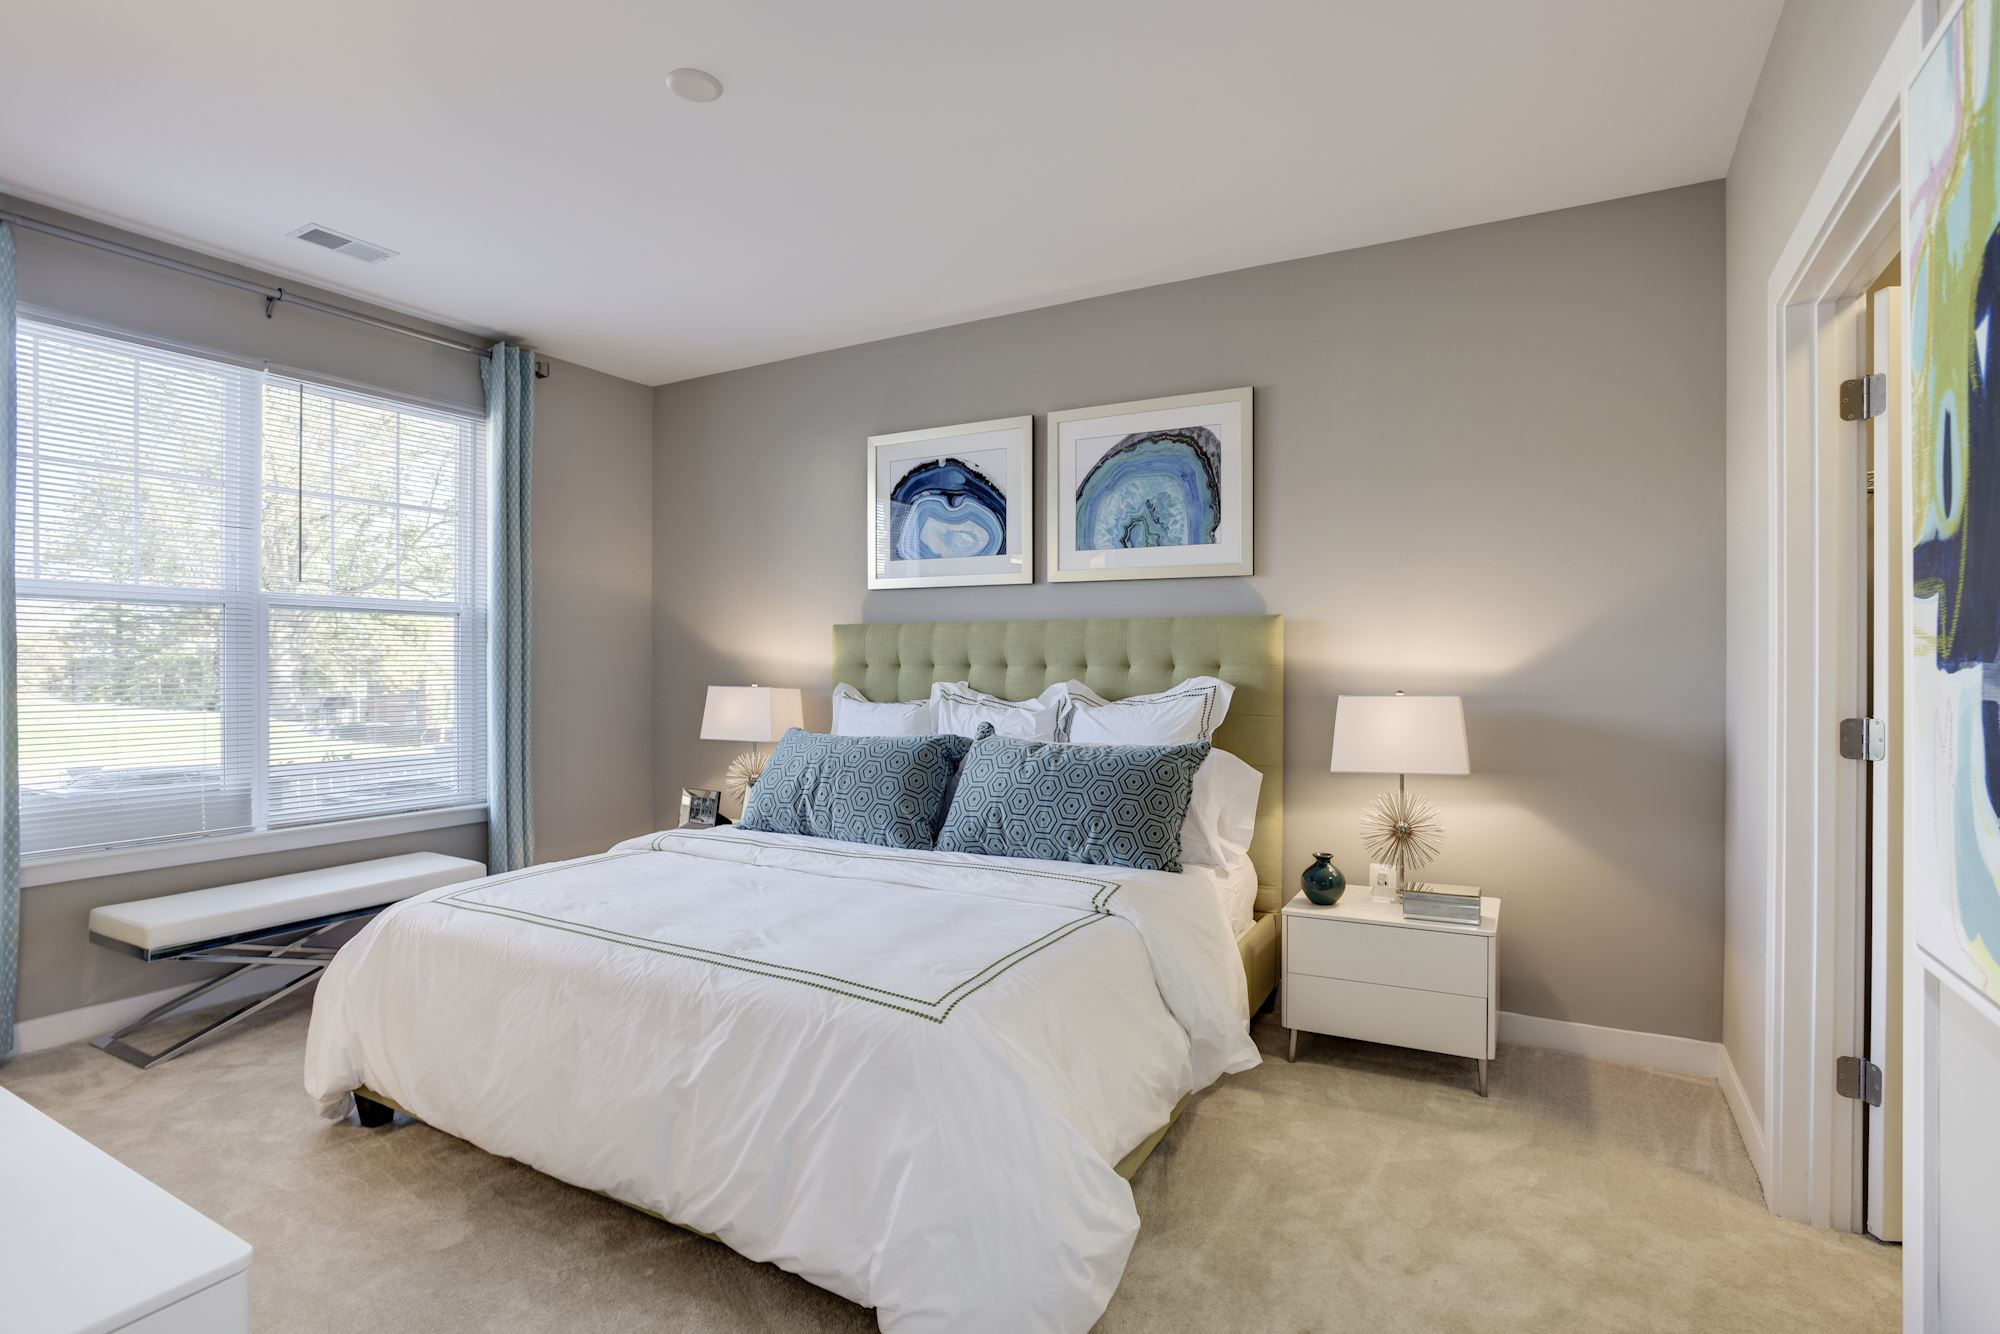 Avanti Luxury Apartments in Bel Air, MD - Master Bedroom